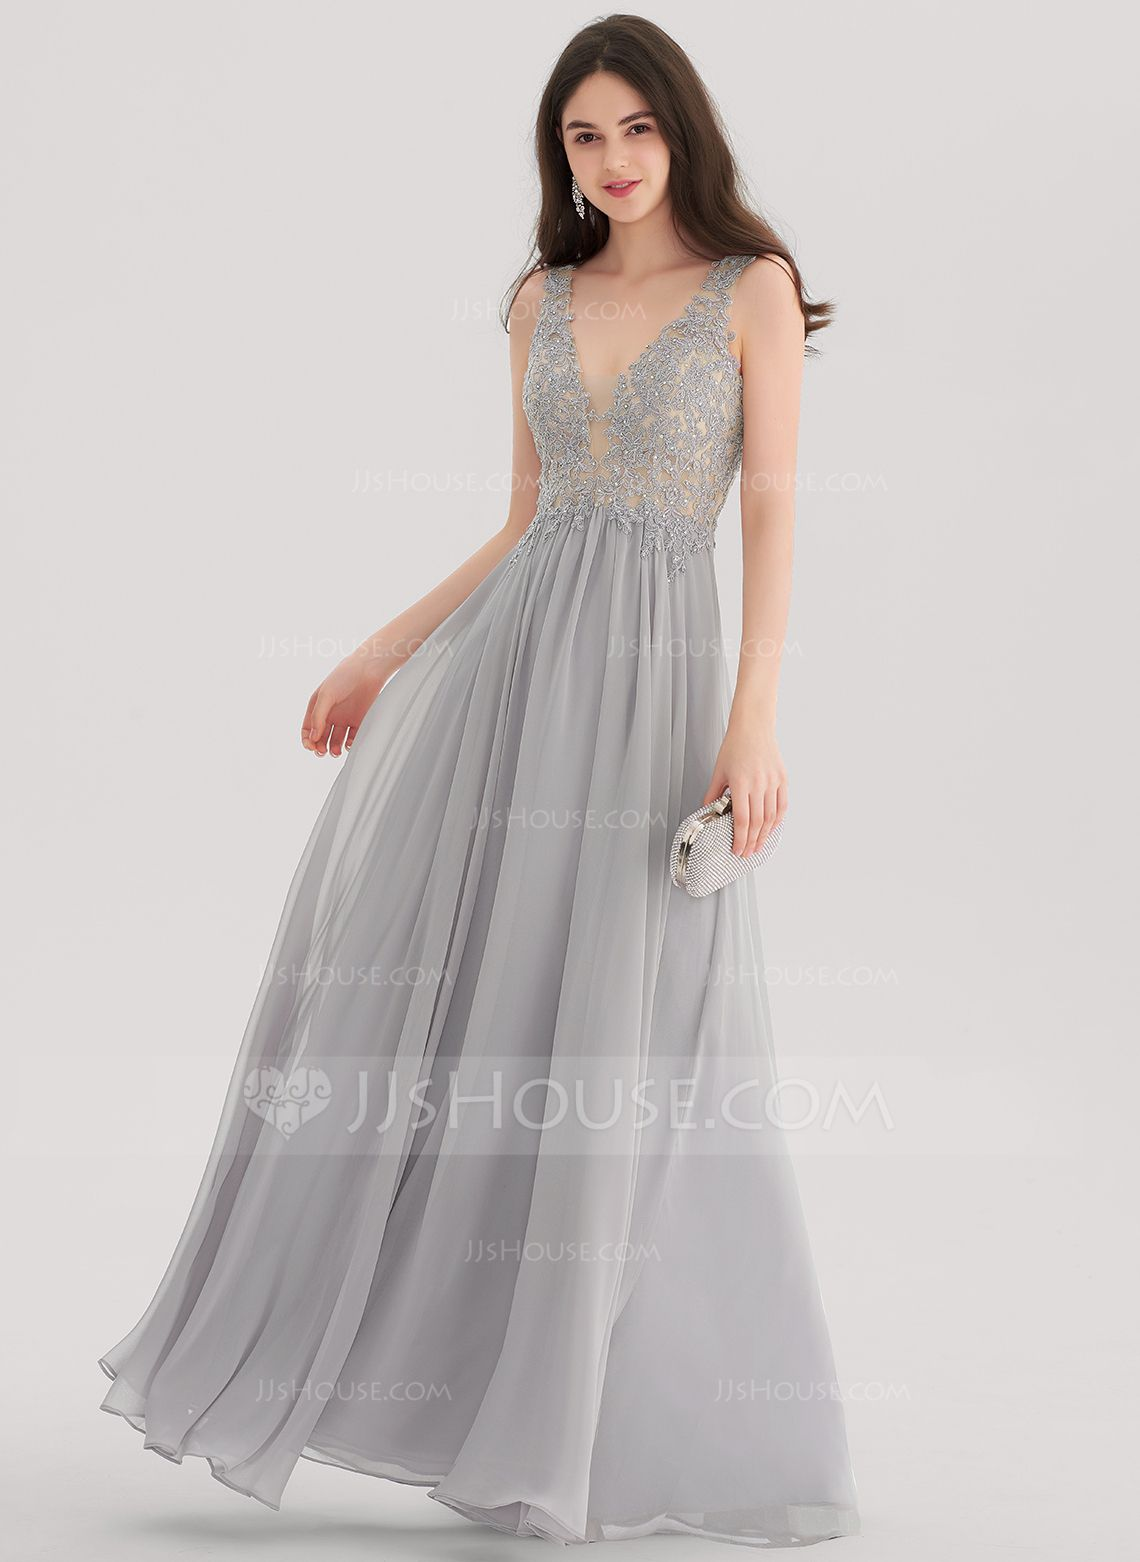 Alineprincess vneck floorlength chiffon prom dresses with